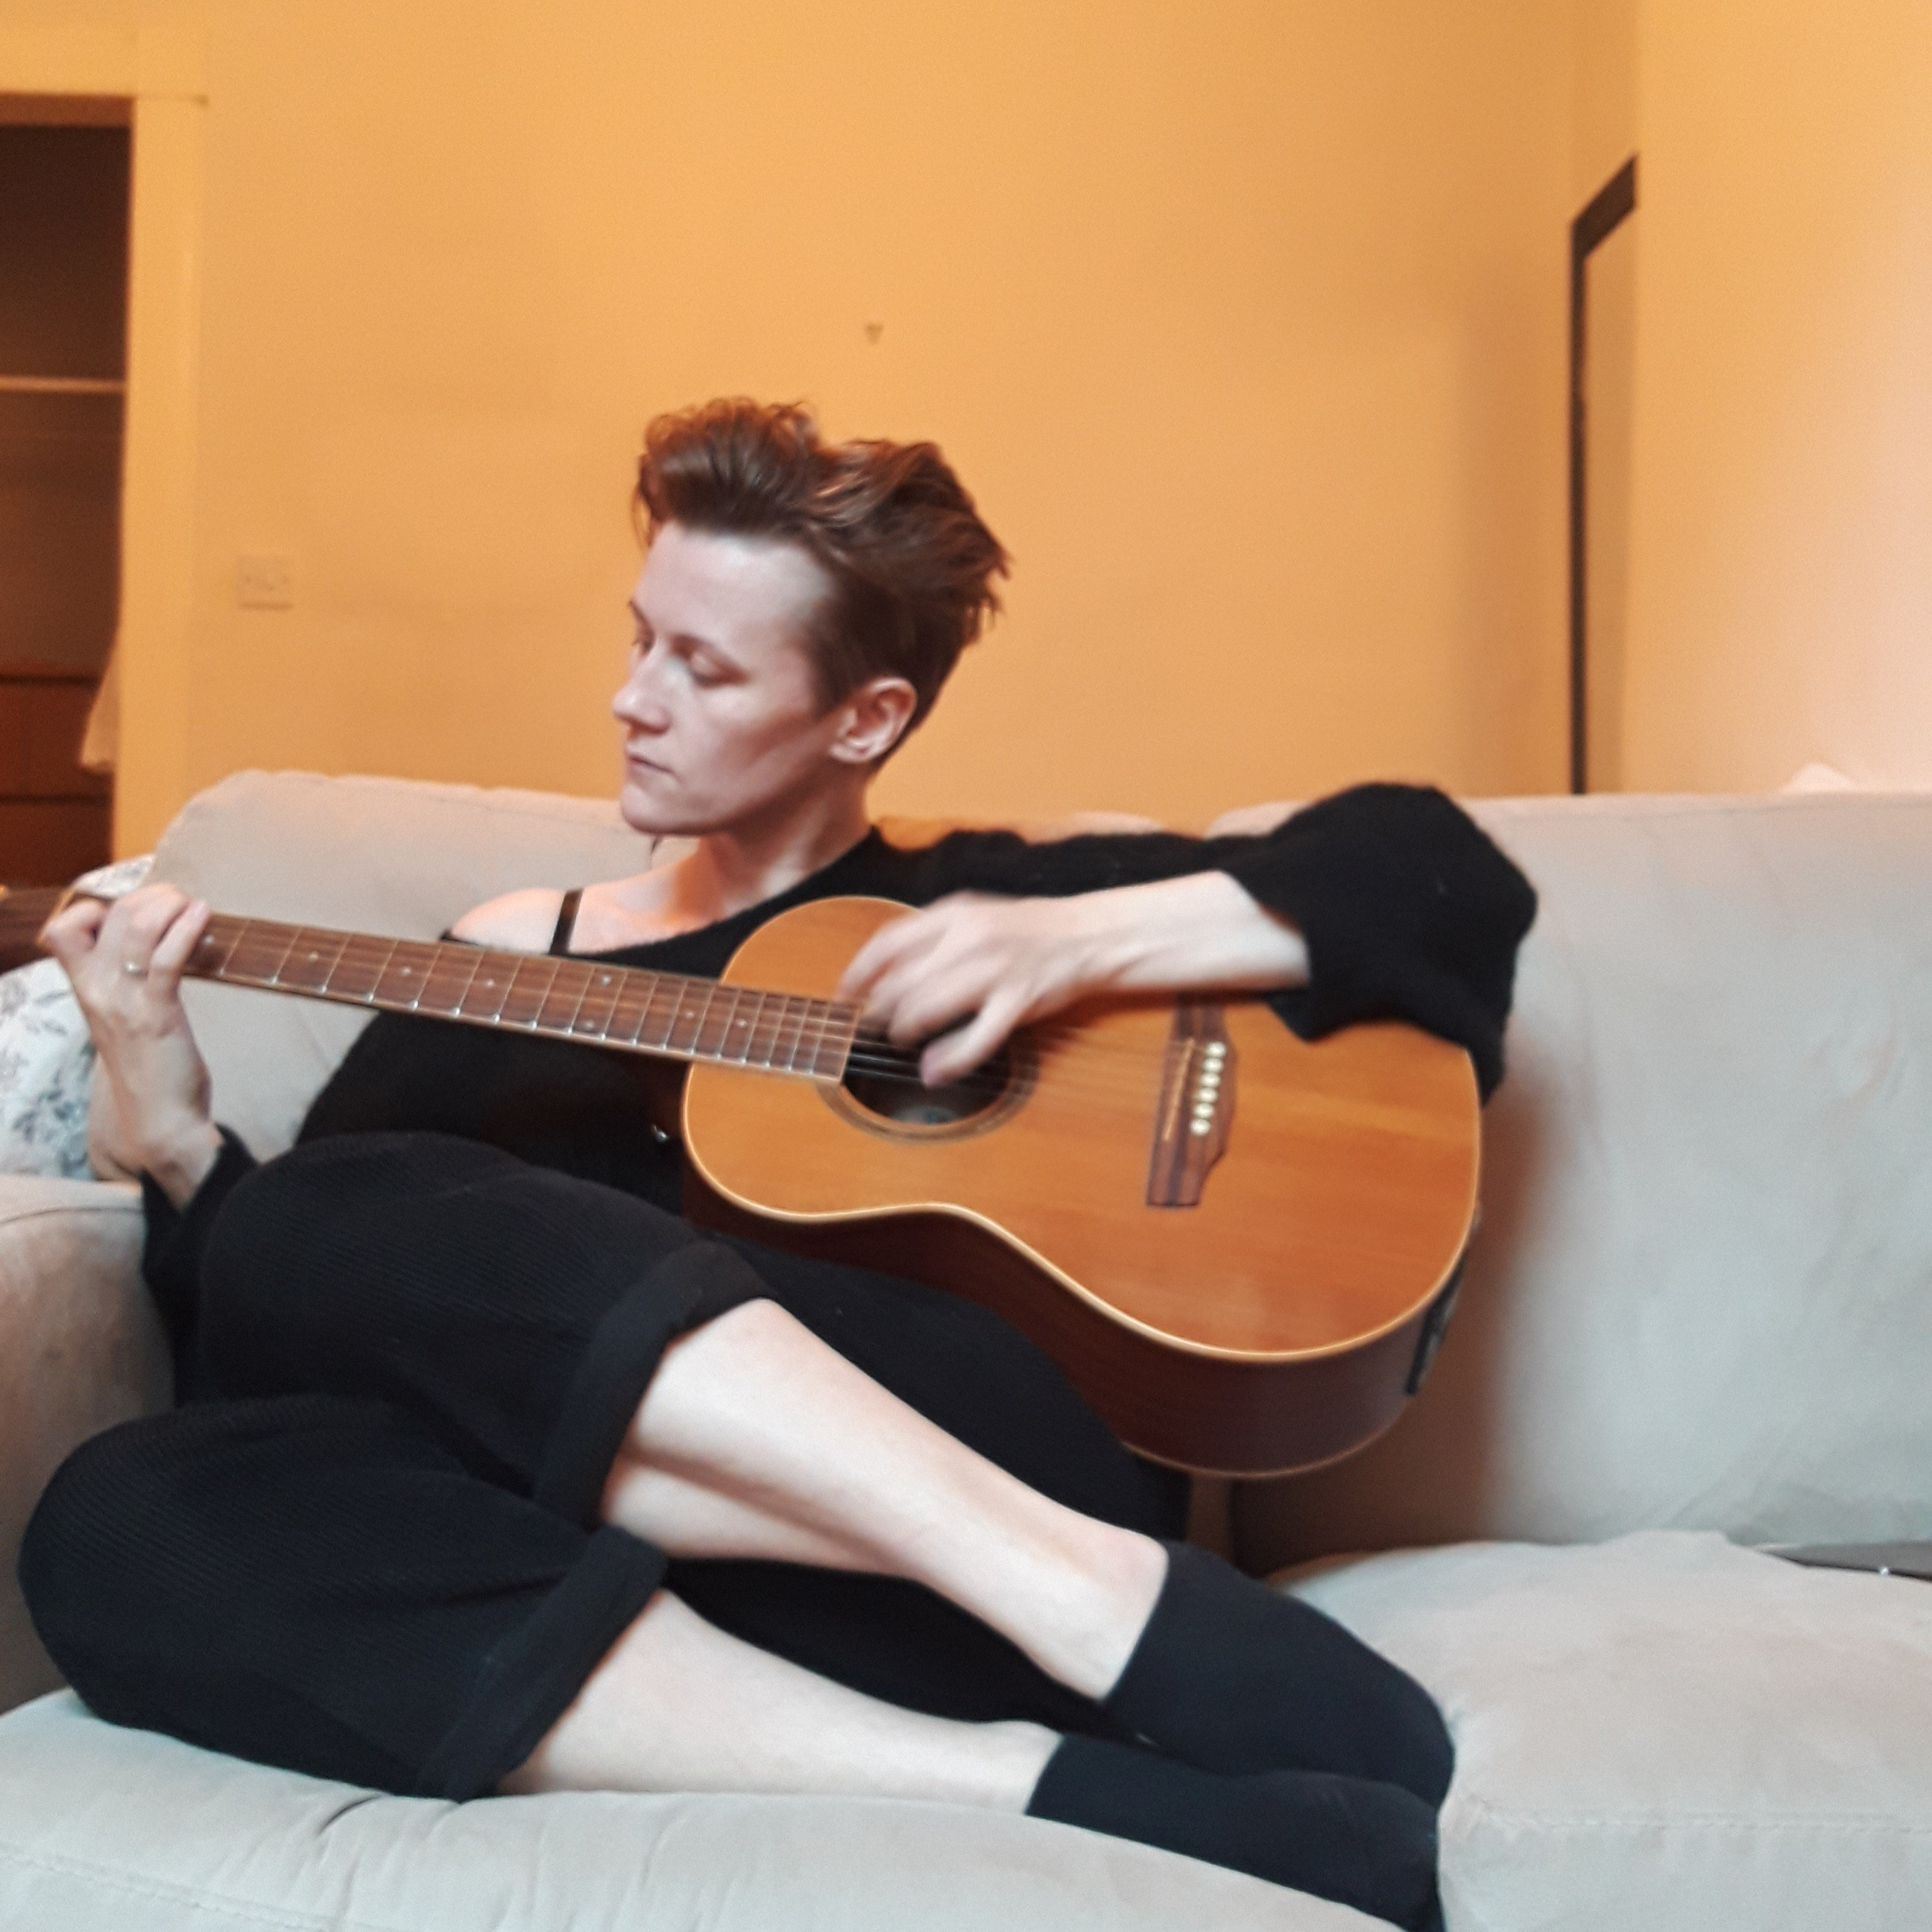 A picture of Emma, curled on a seat and playing an acoustic guitar.